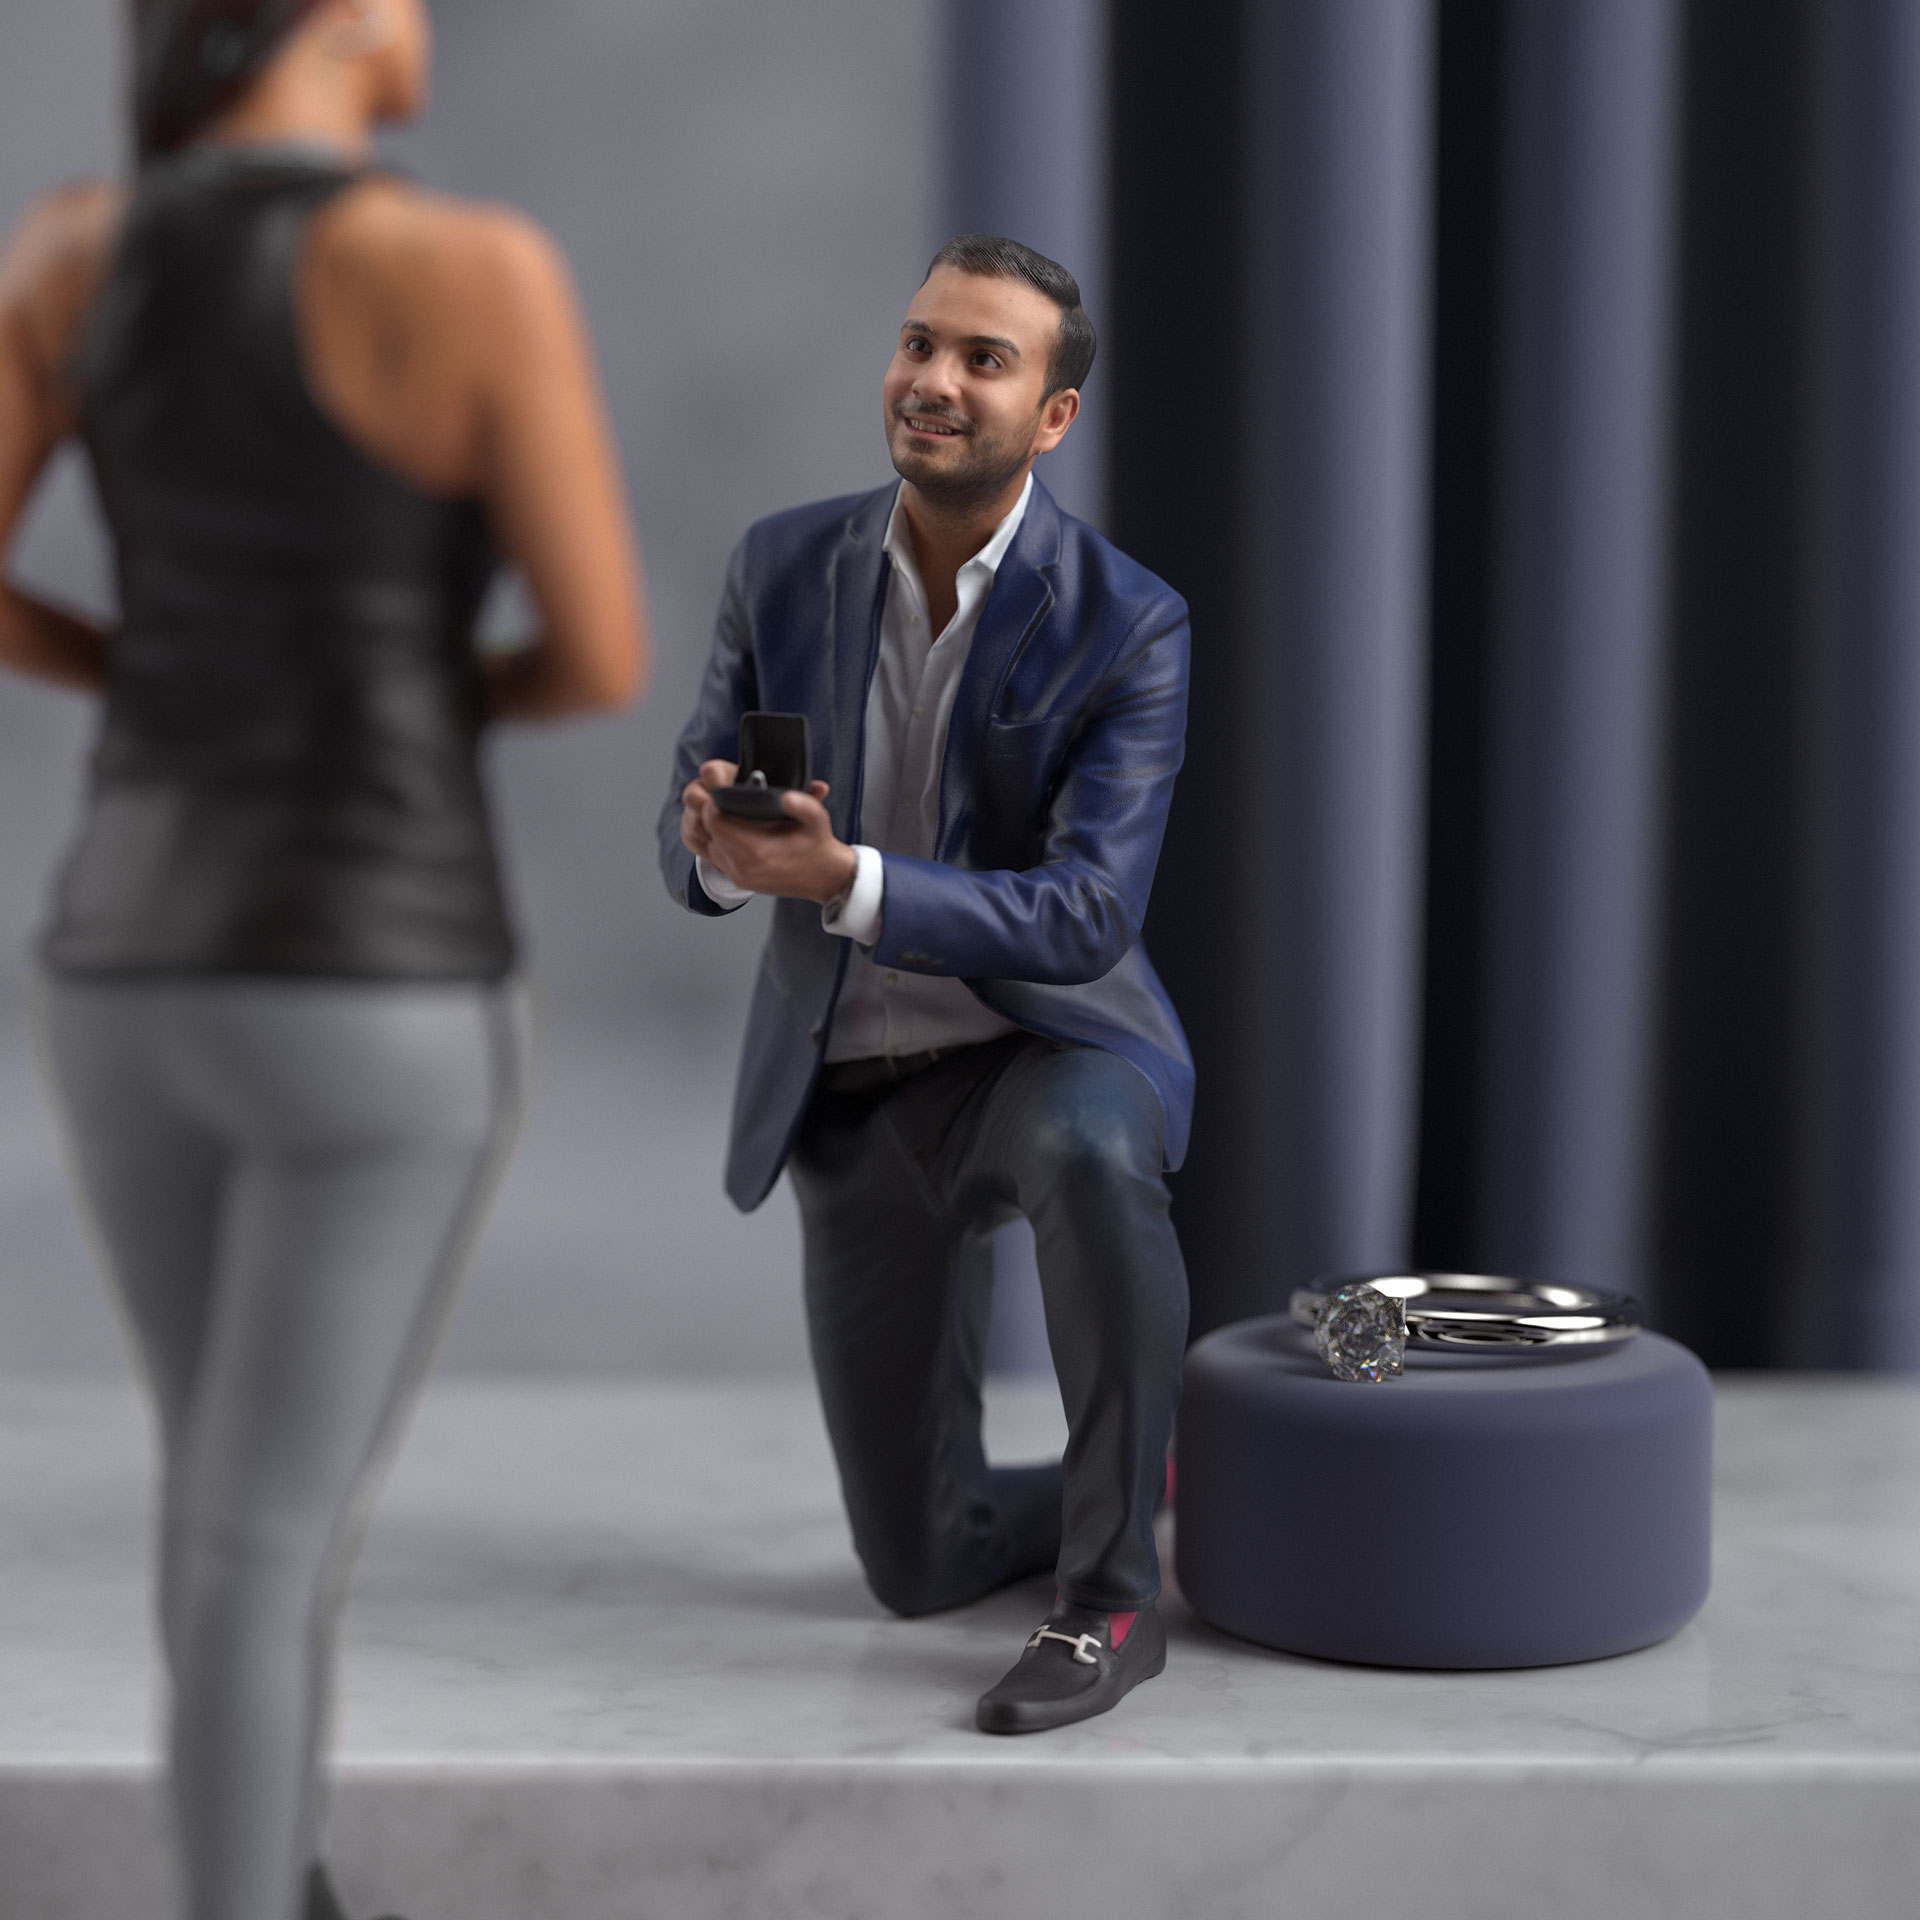 a man proposing with a ring